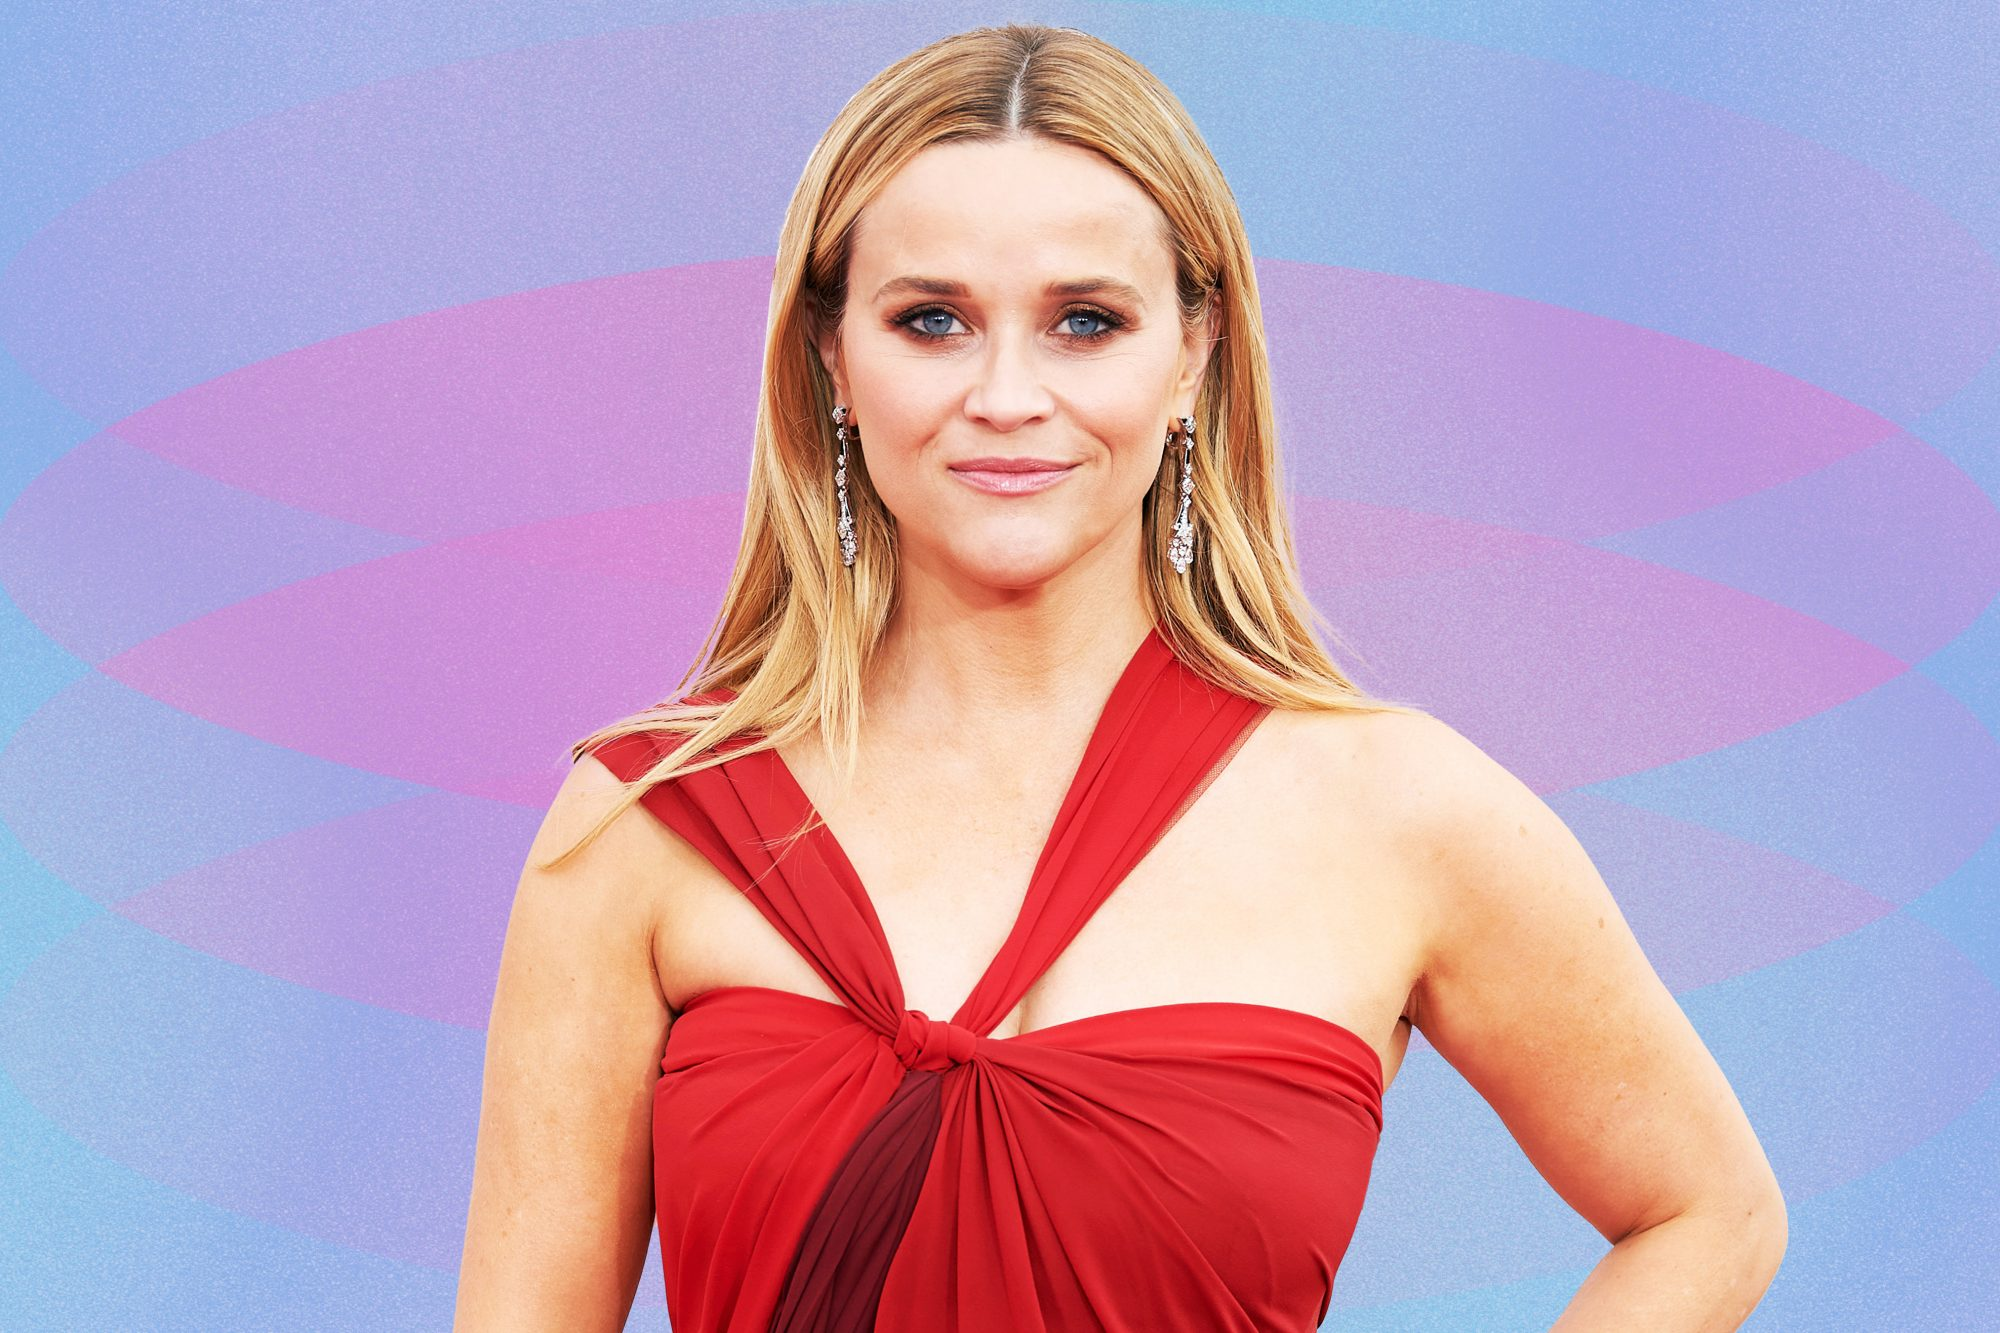 Reese-Witherspoon-Reveals-the-Skincare-Essentials-She-Travels-With-Including-a-Dark-Spot-Revering-Serum-GettyImages-1314455569